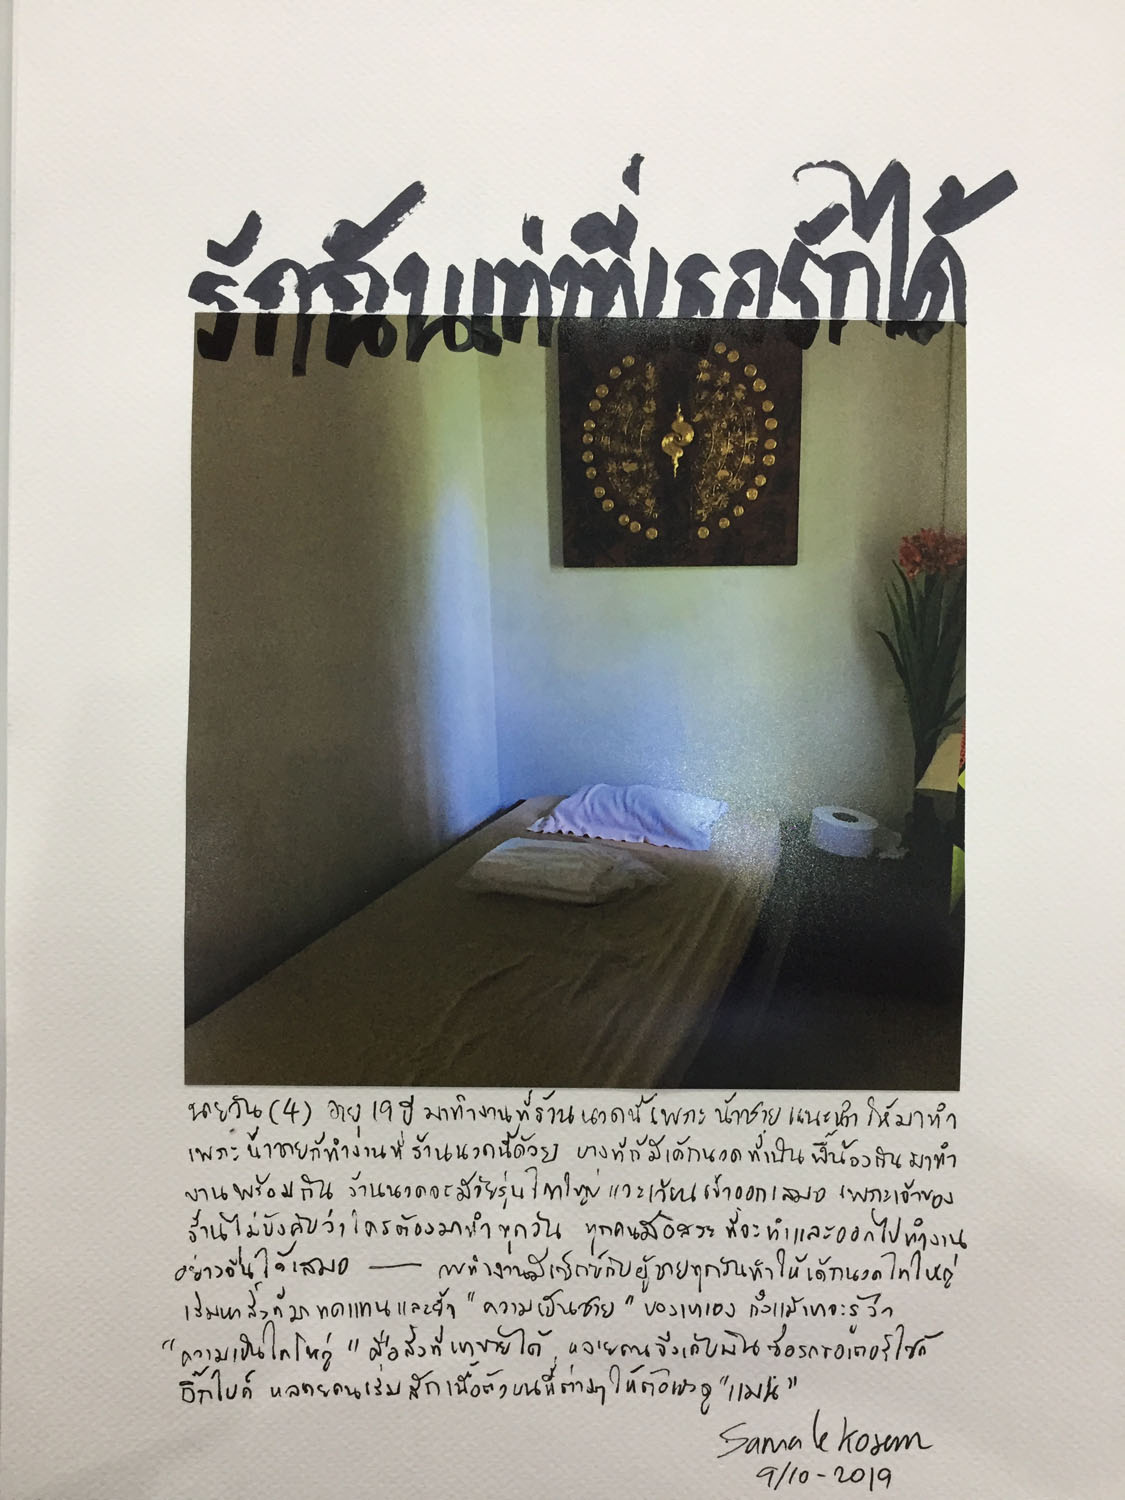 Borders re/make Bodies: Chiang Mai Ethnography - Ethnography of the House No. 9